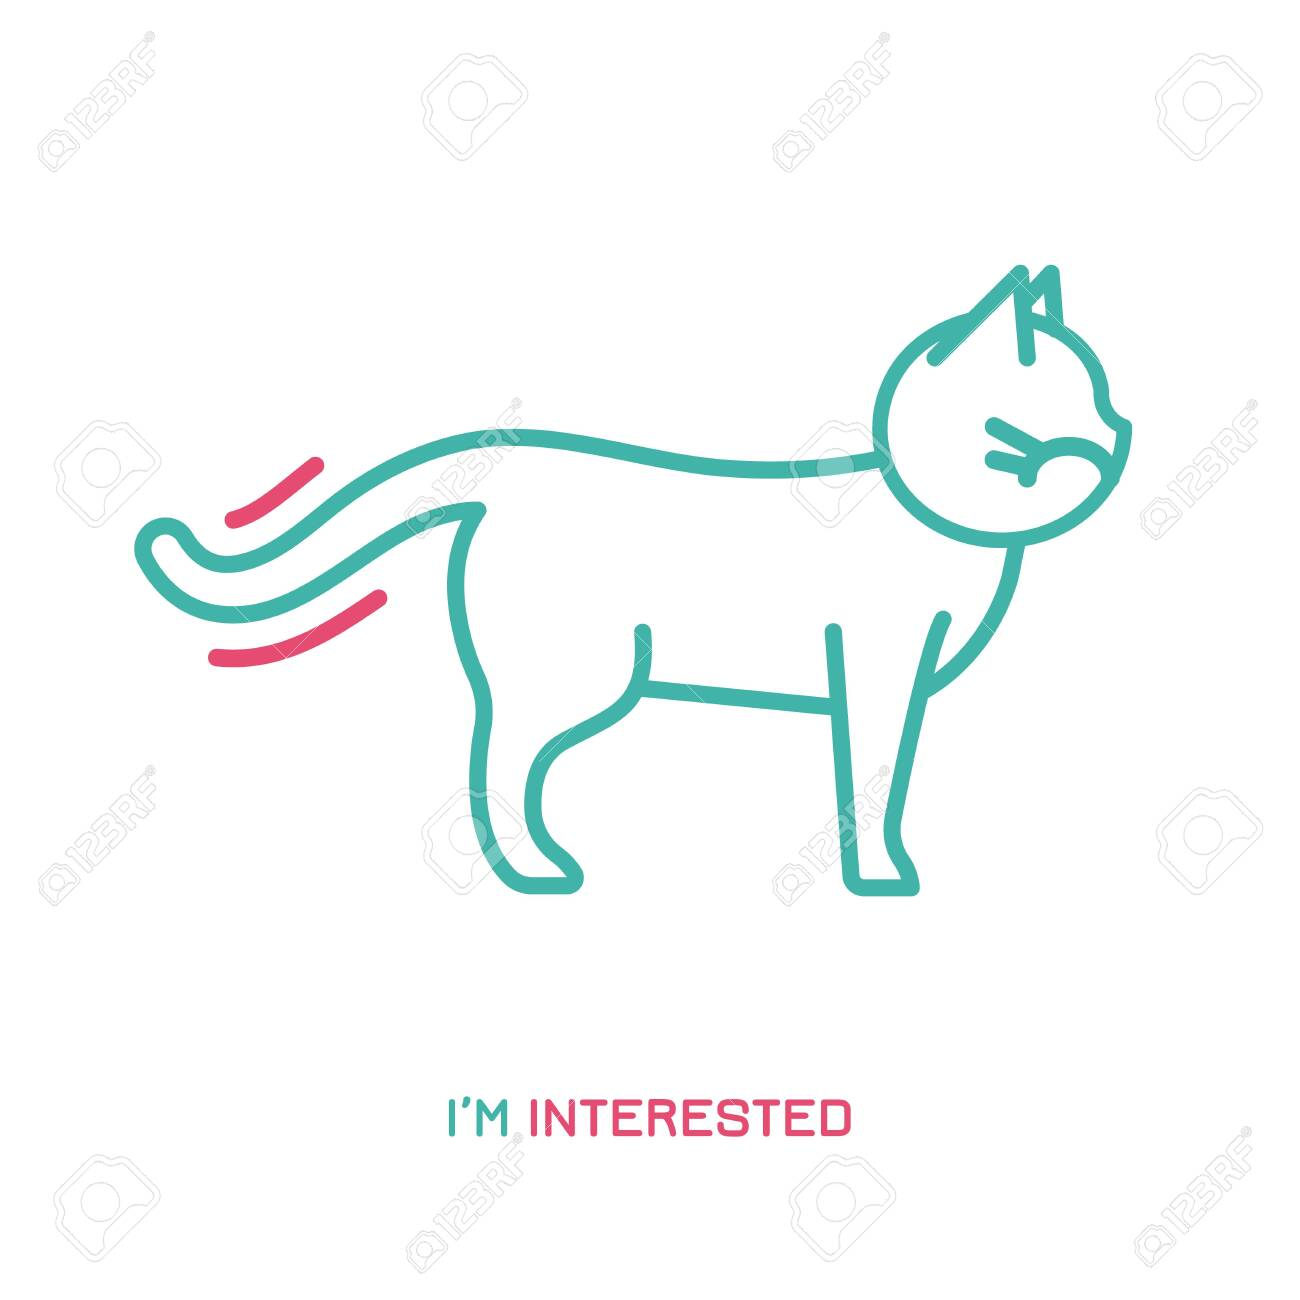 Cat behavior icon. Domestic animal or pet tail language. I am interested. Kitty reaction. Simple icon, symbol, sign. Editablel vector illustration isolated on white background - 132190048